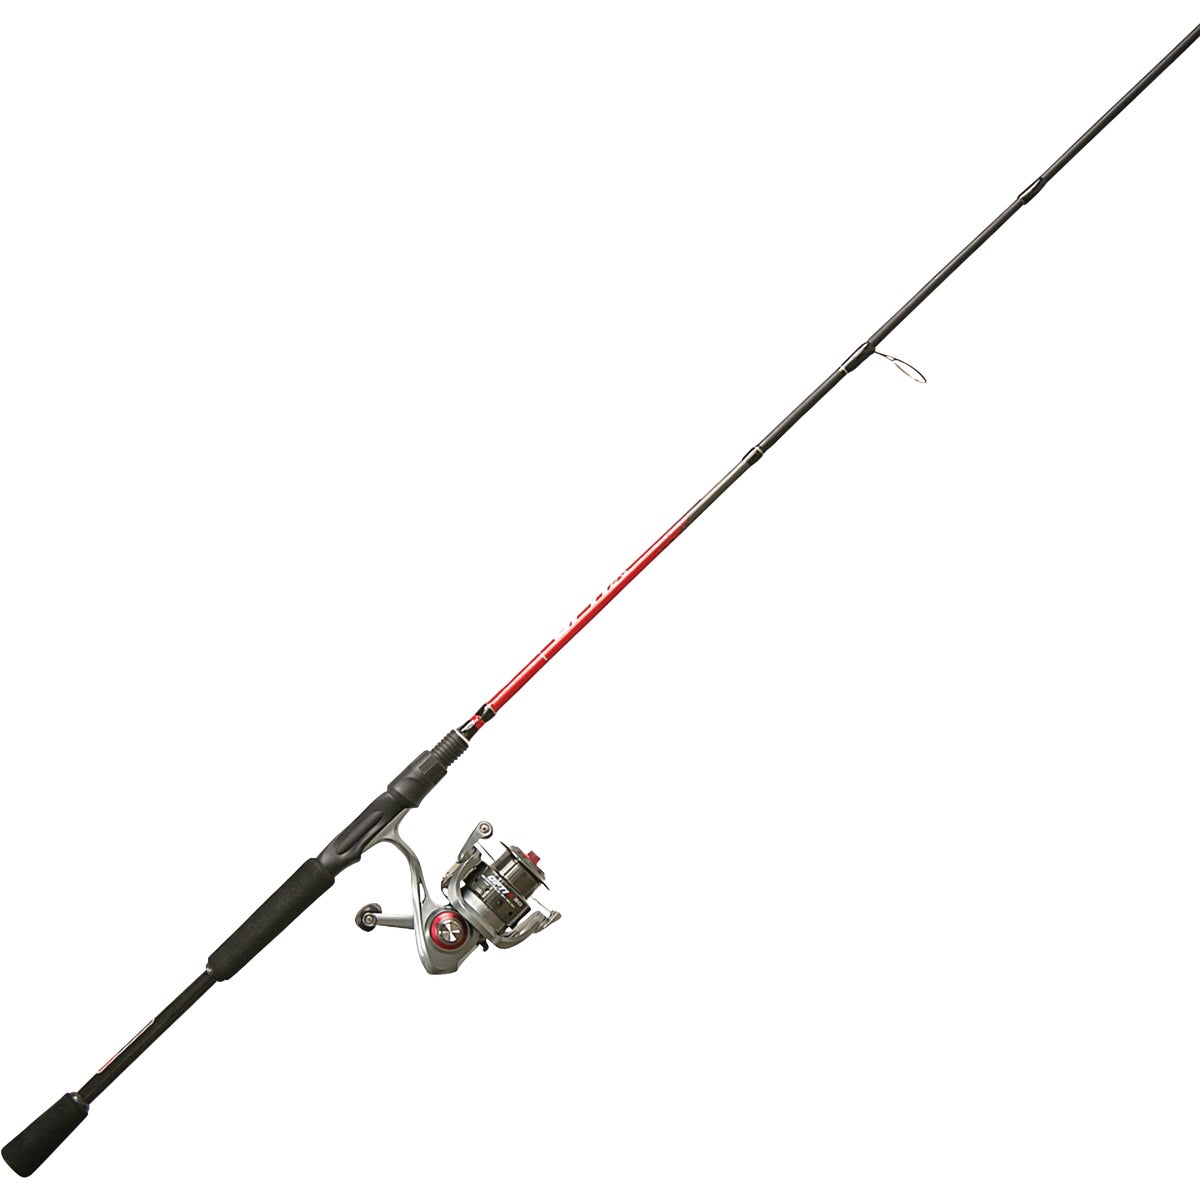 "6'6"" SPINNING ROD & REEL - OP3066MC by Zebco"